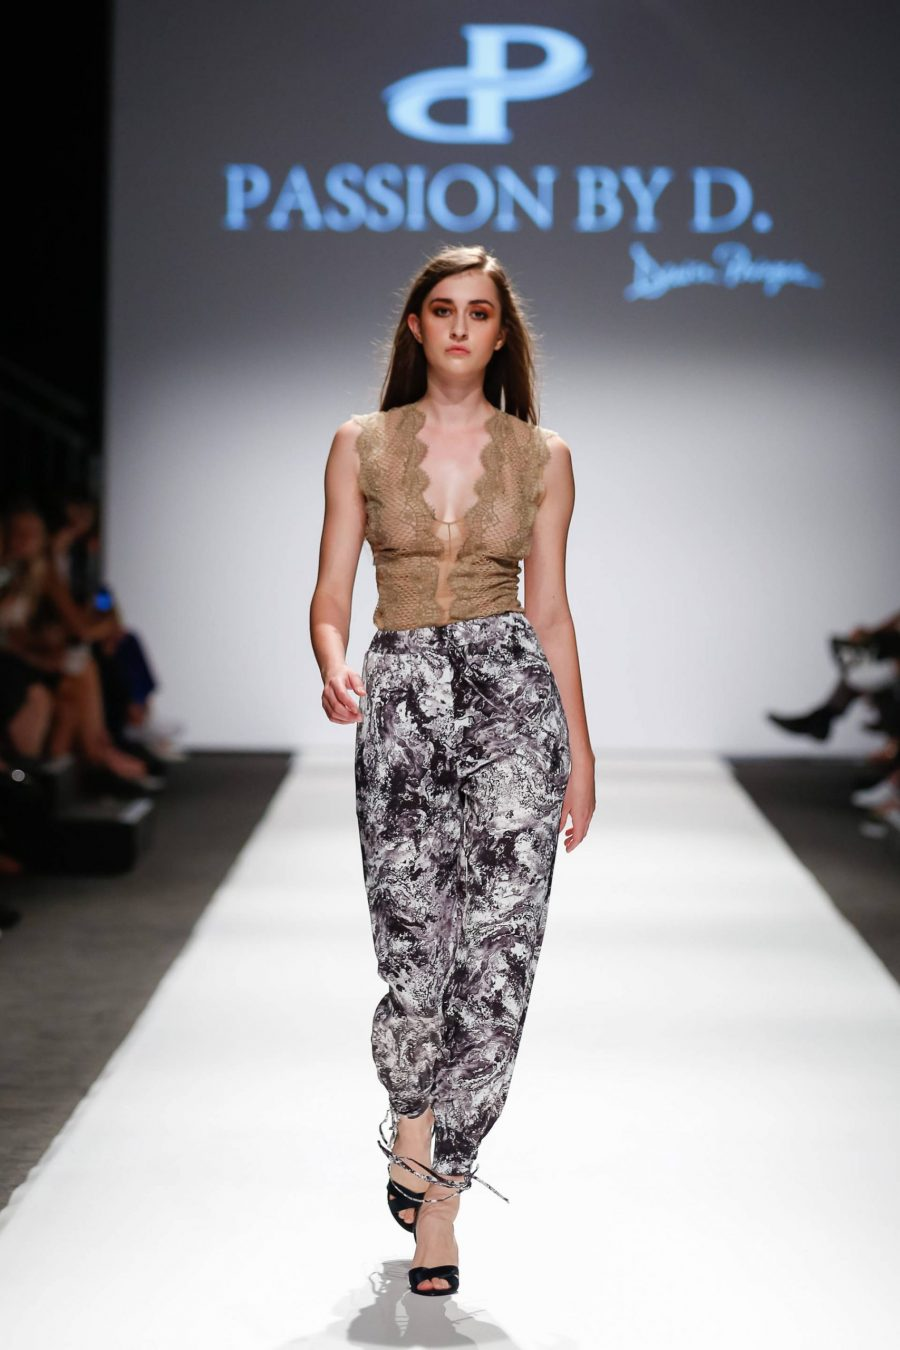 Lace top, Fashion Show Vienna Fashion week 2019 - Passion by D